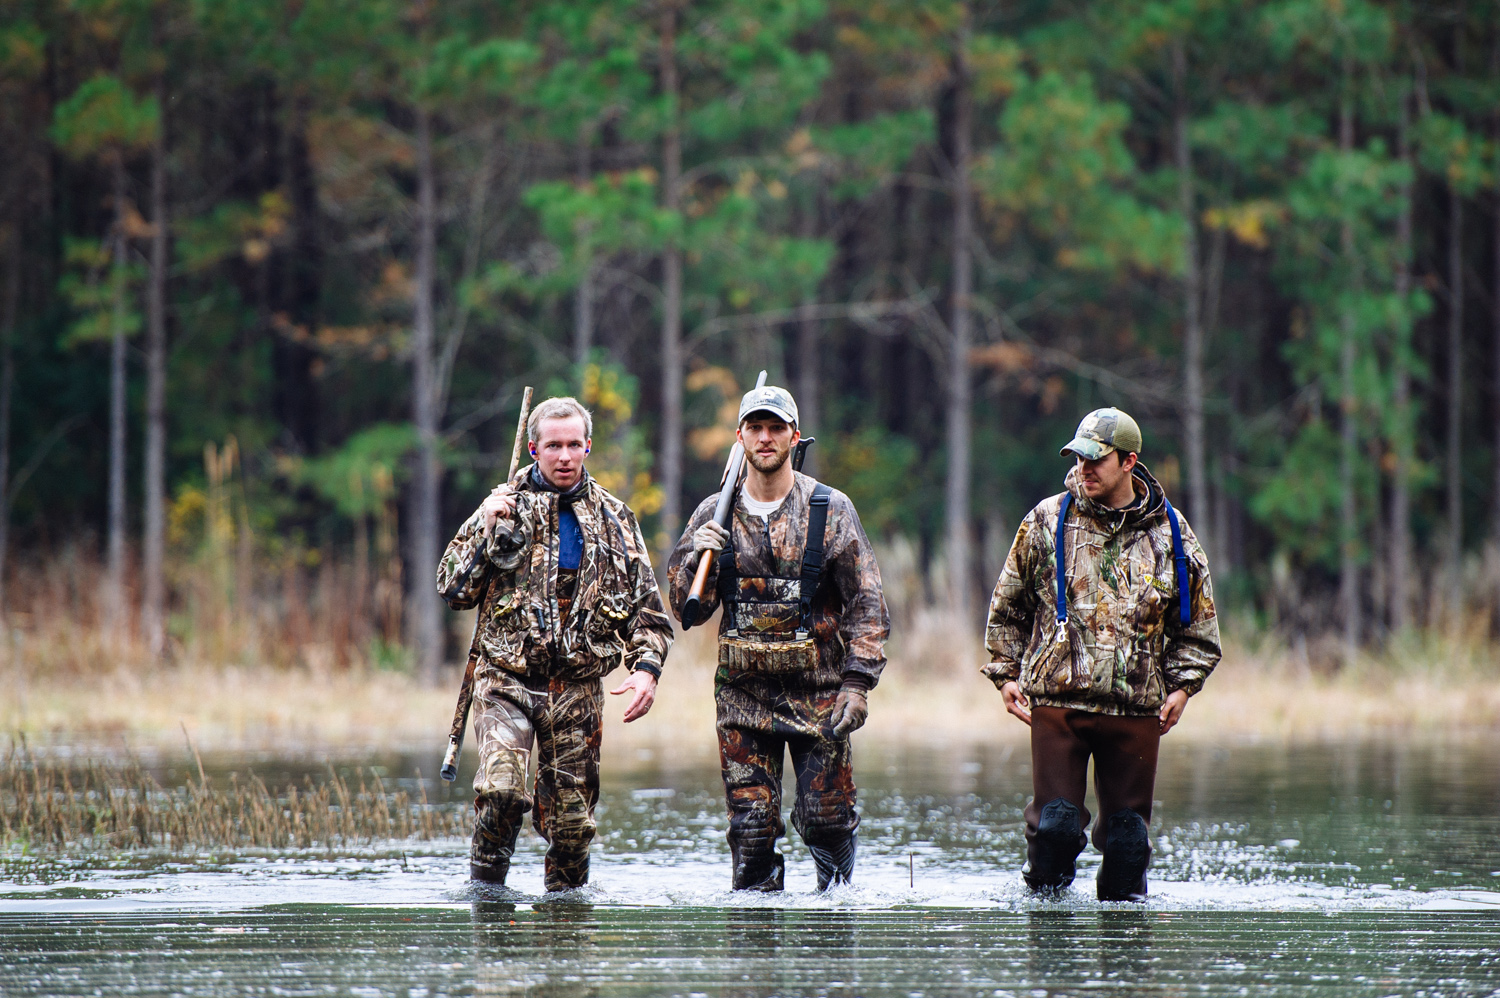 #skinnywaders2013 I THE2654PROJECT-13.jpg